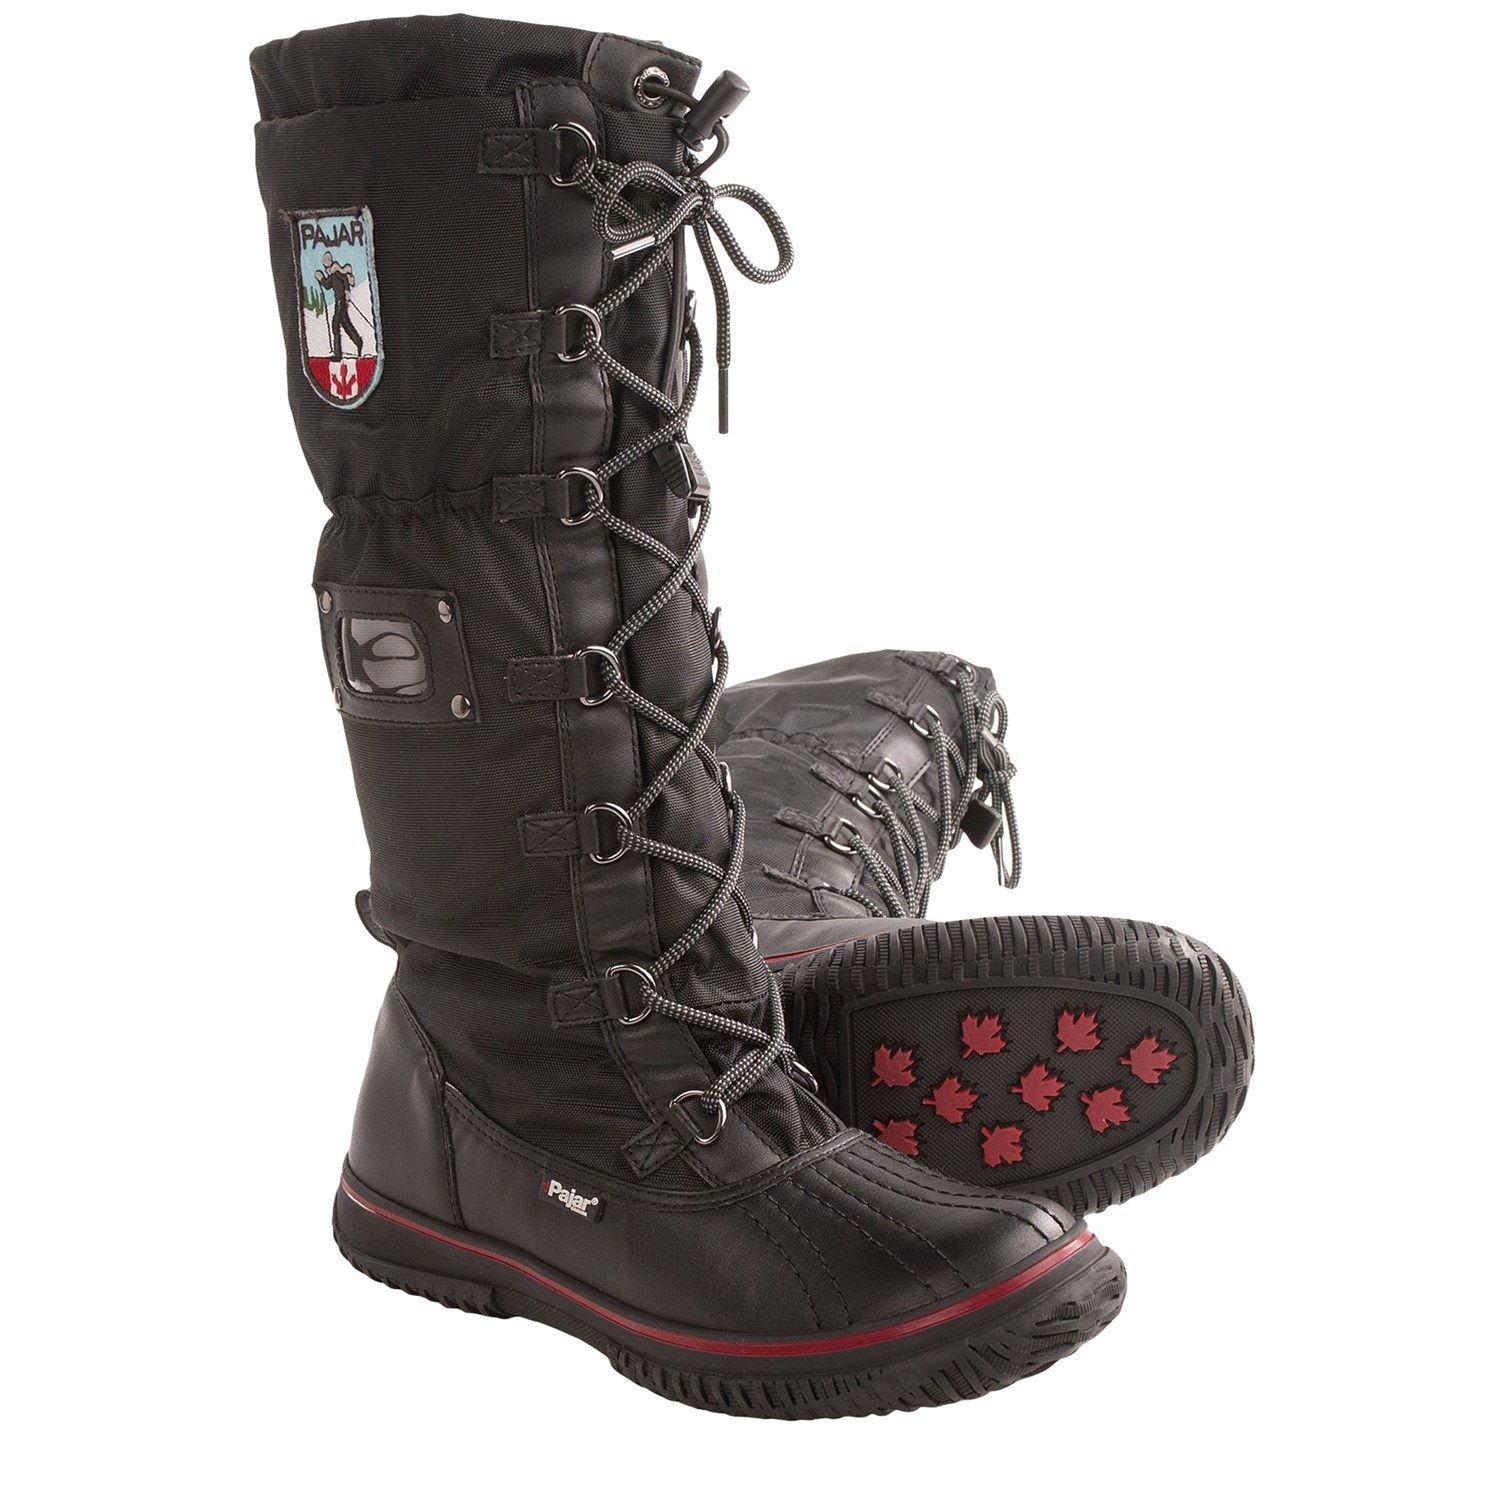 Pajar Grip High Winter Snow Boots (For Women) | Winter snow boots ...